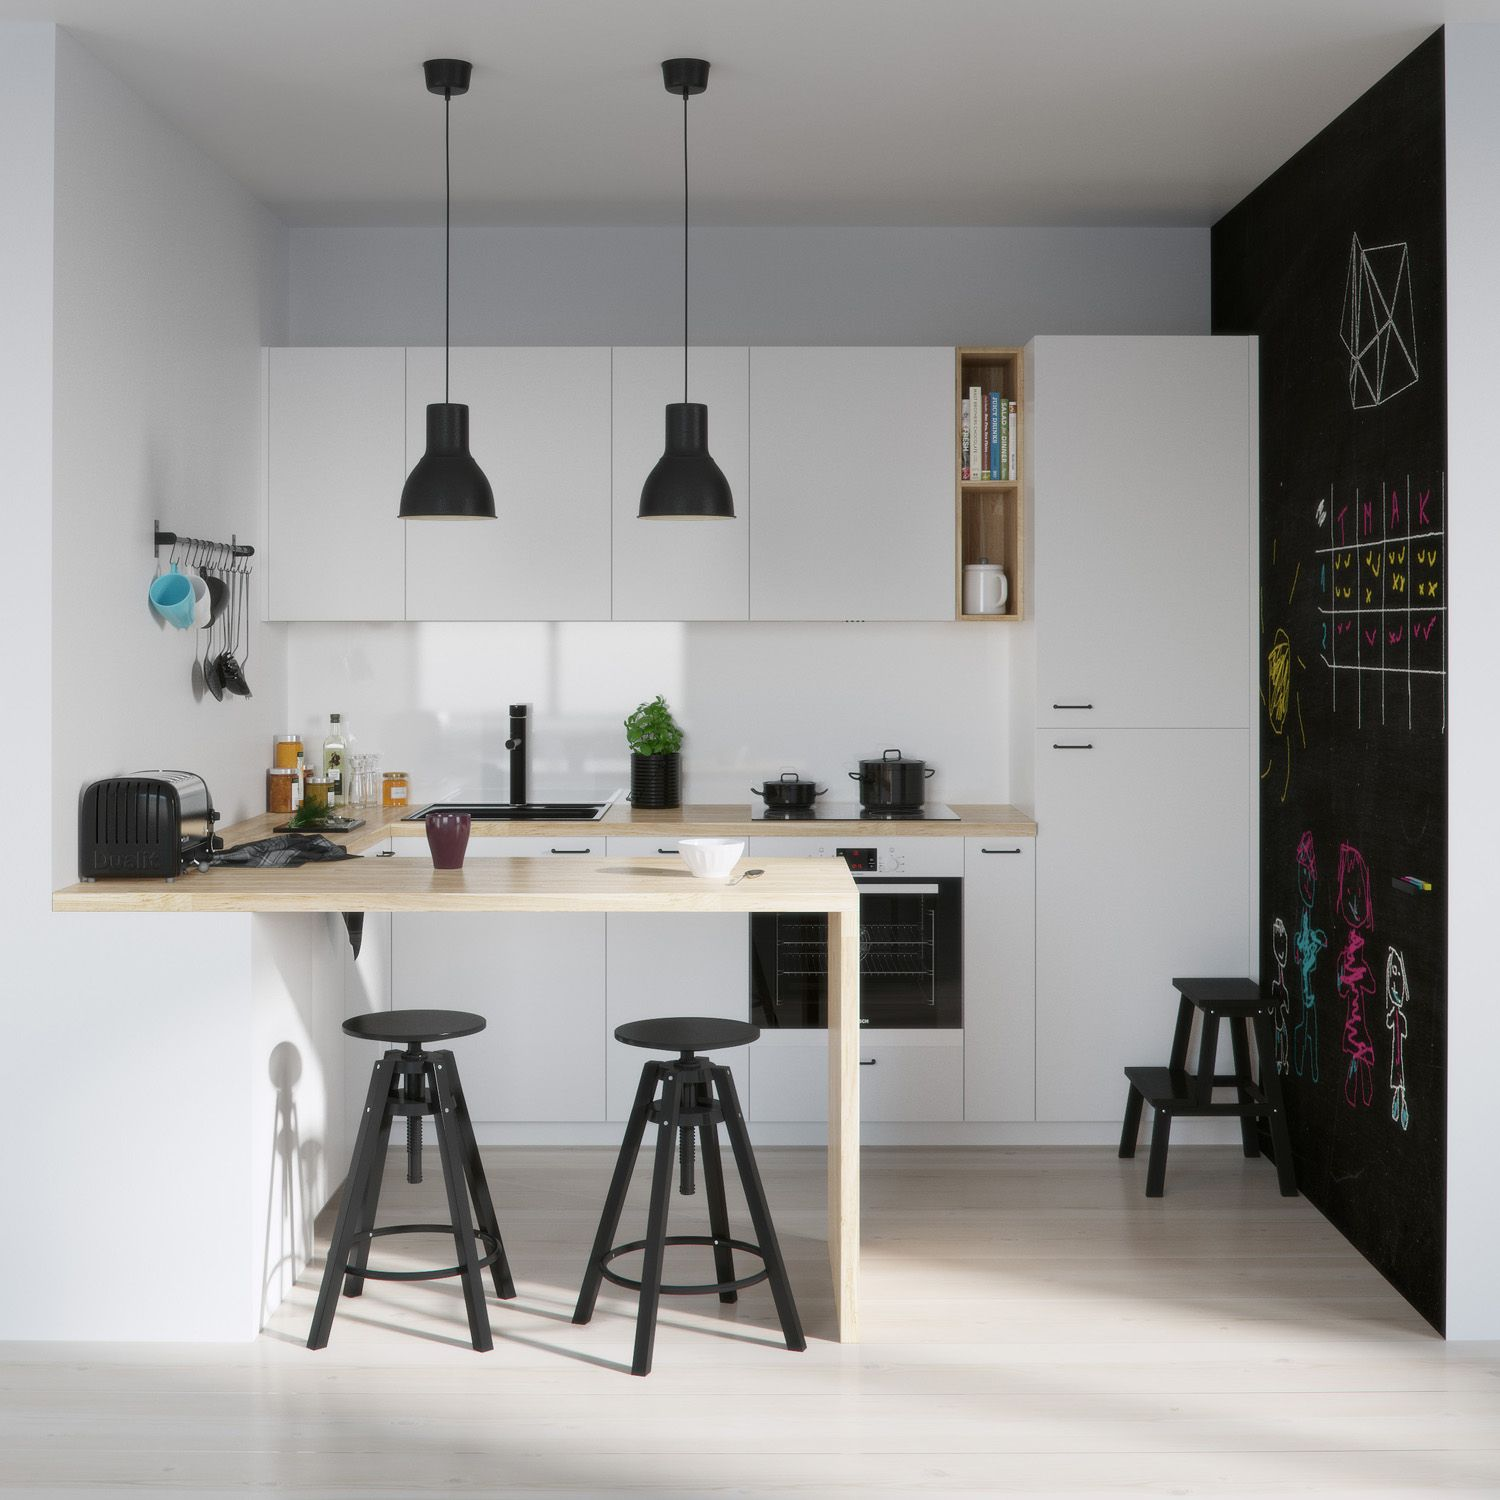 Charmant Ikea Kitchen   Tomek Michalski   Design | Visualization | 3d Art